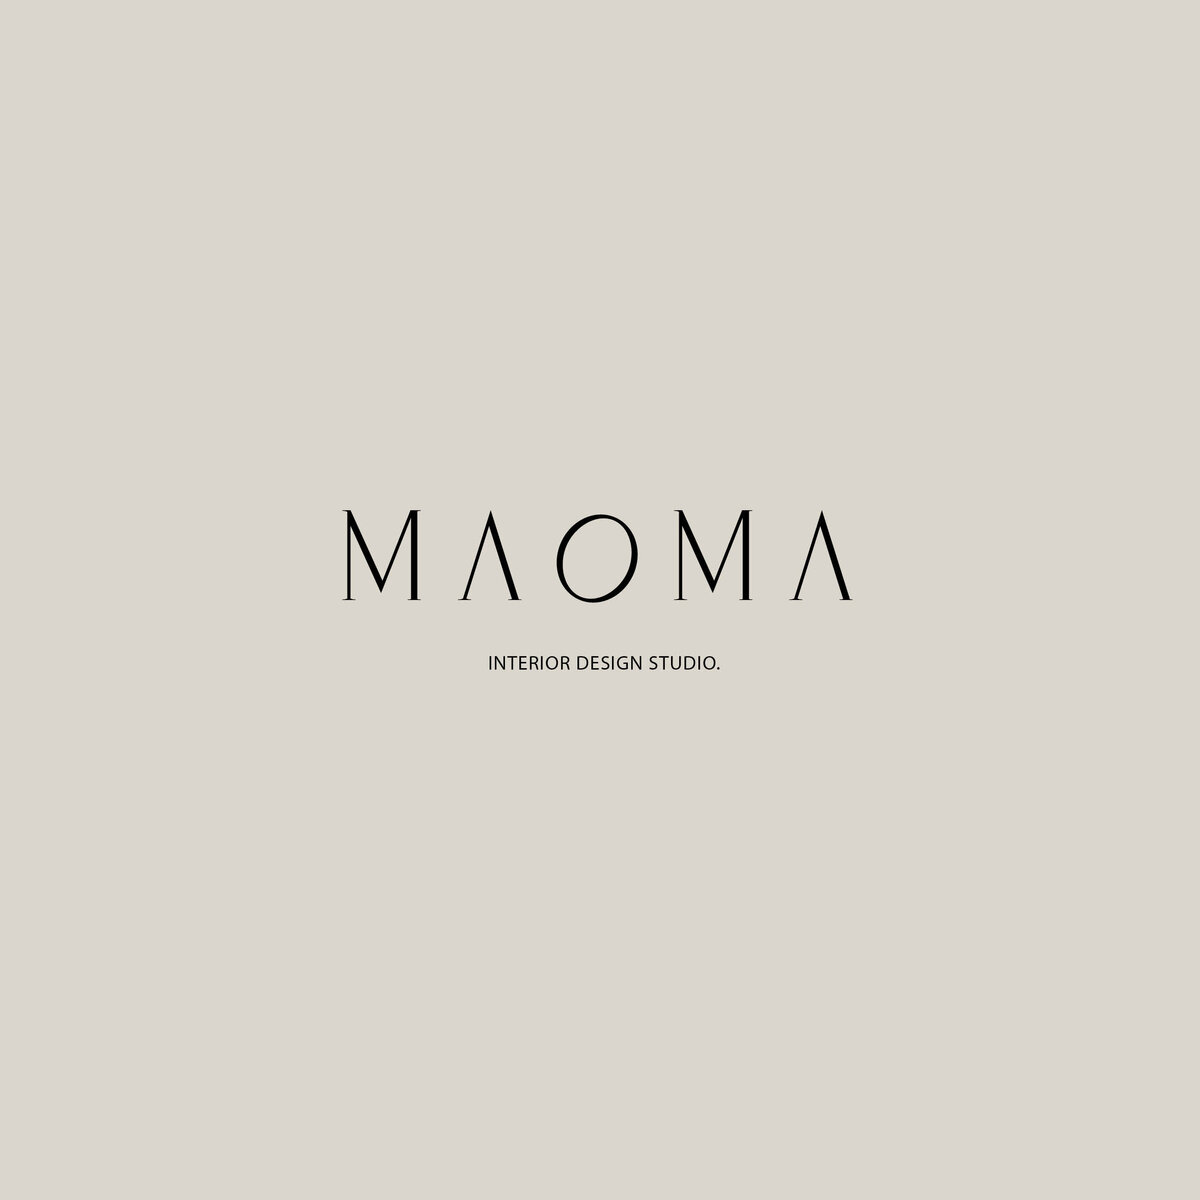 Maoma_ConceptTwo_Unused